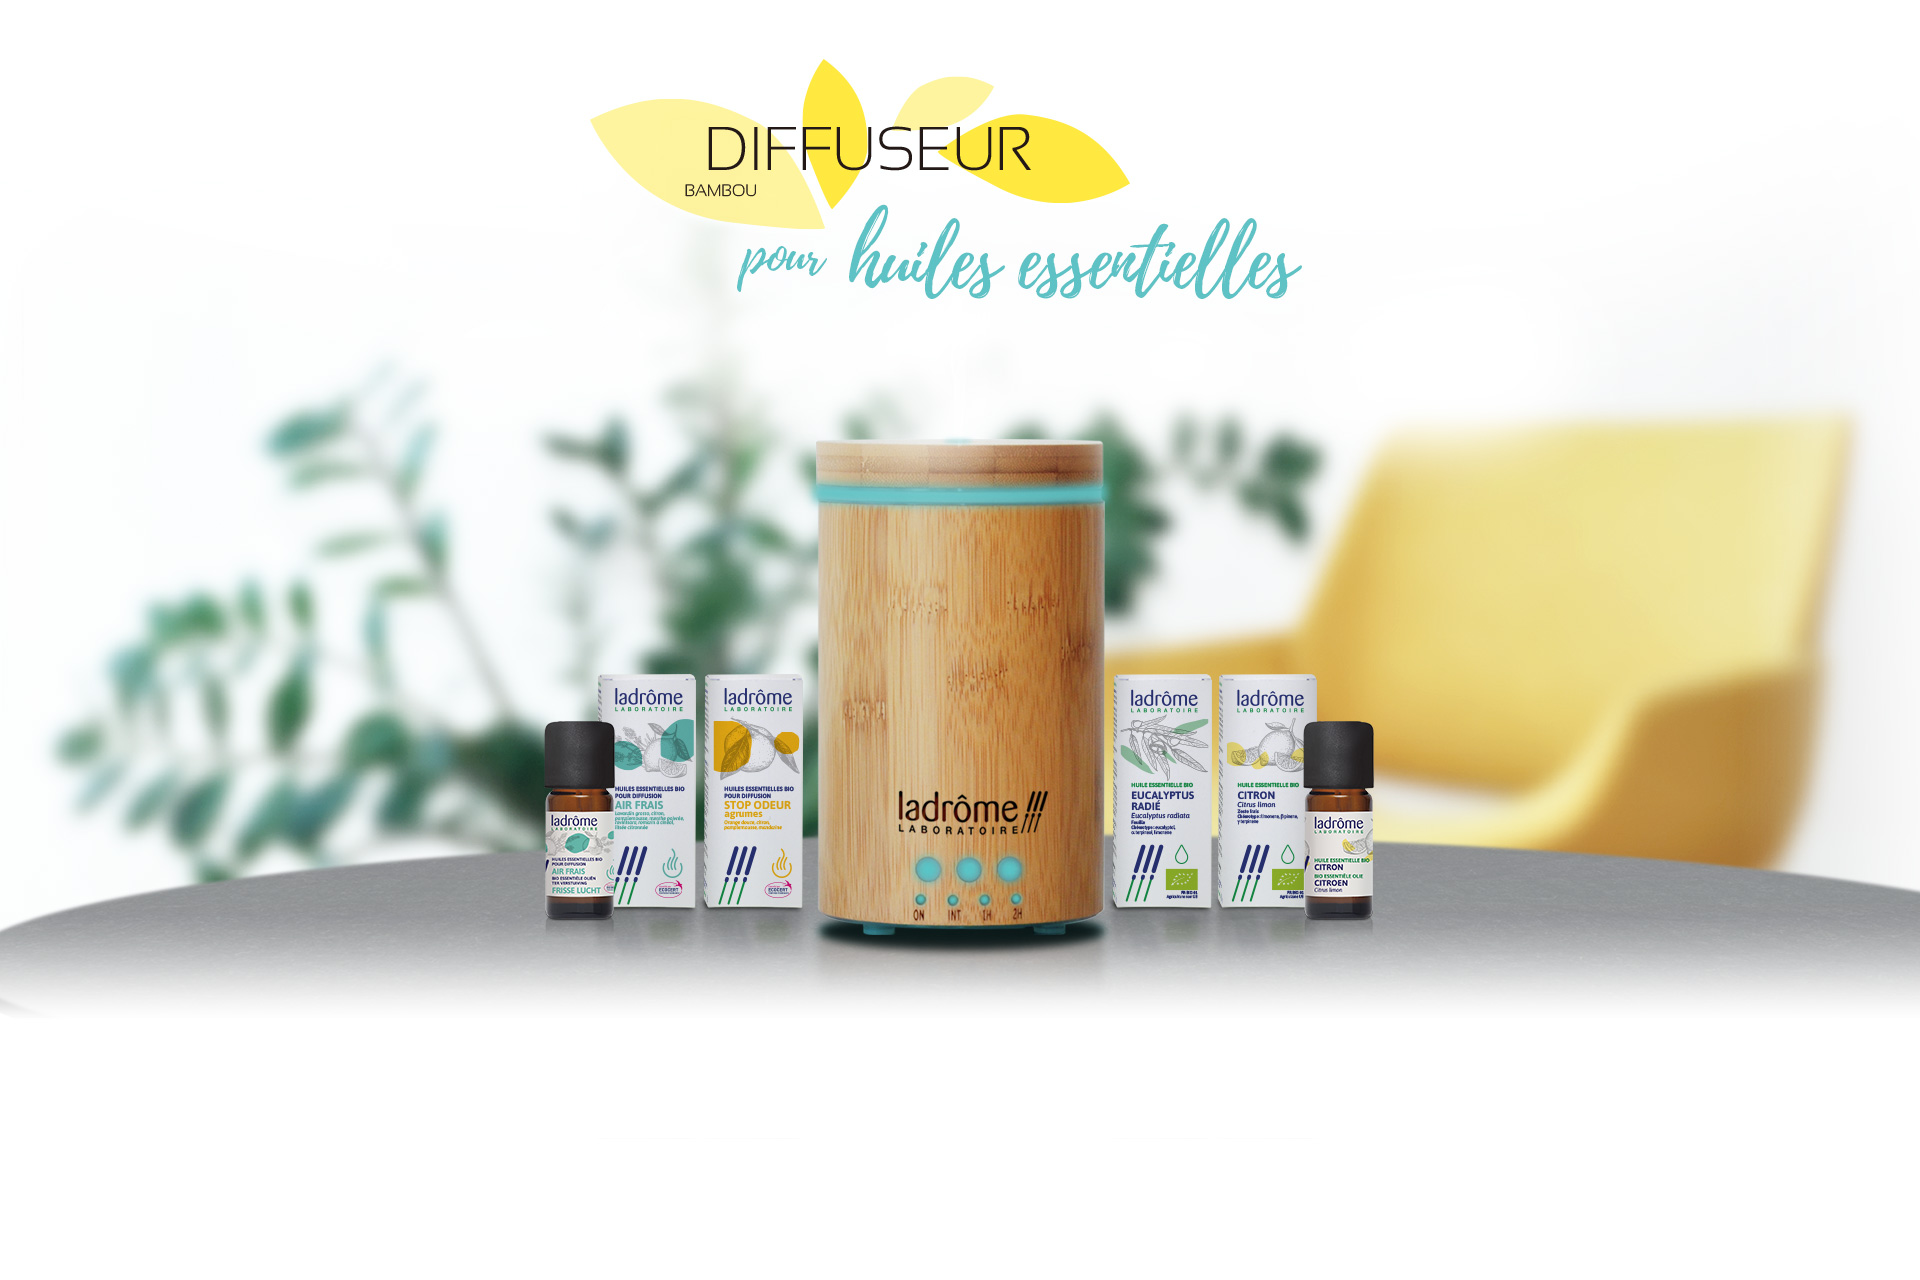 Diffuseur HE